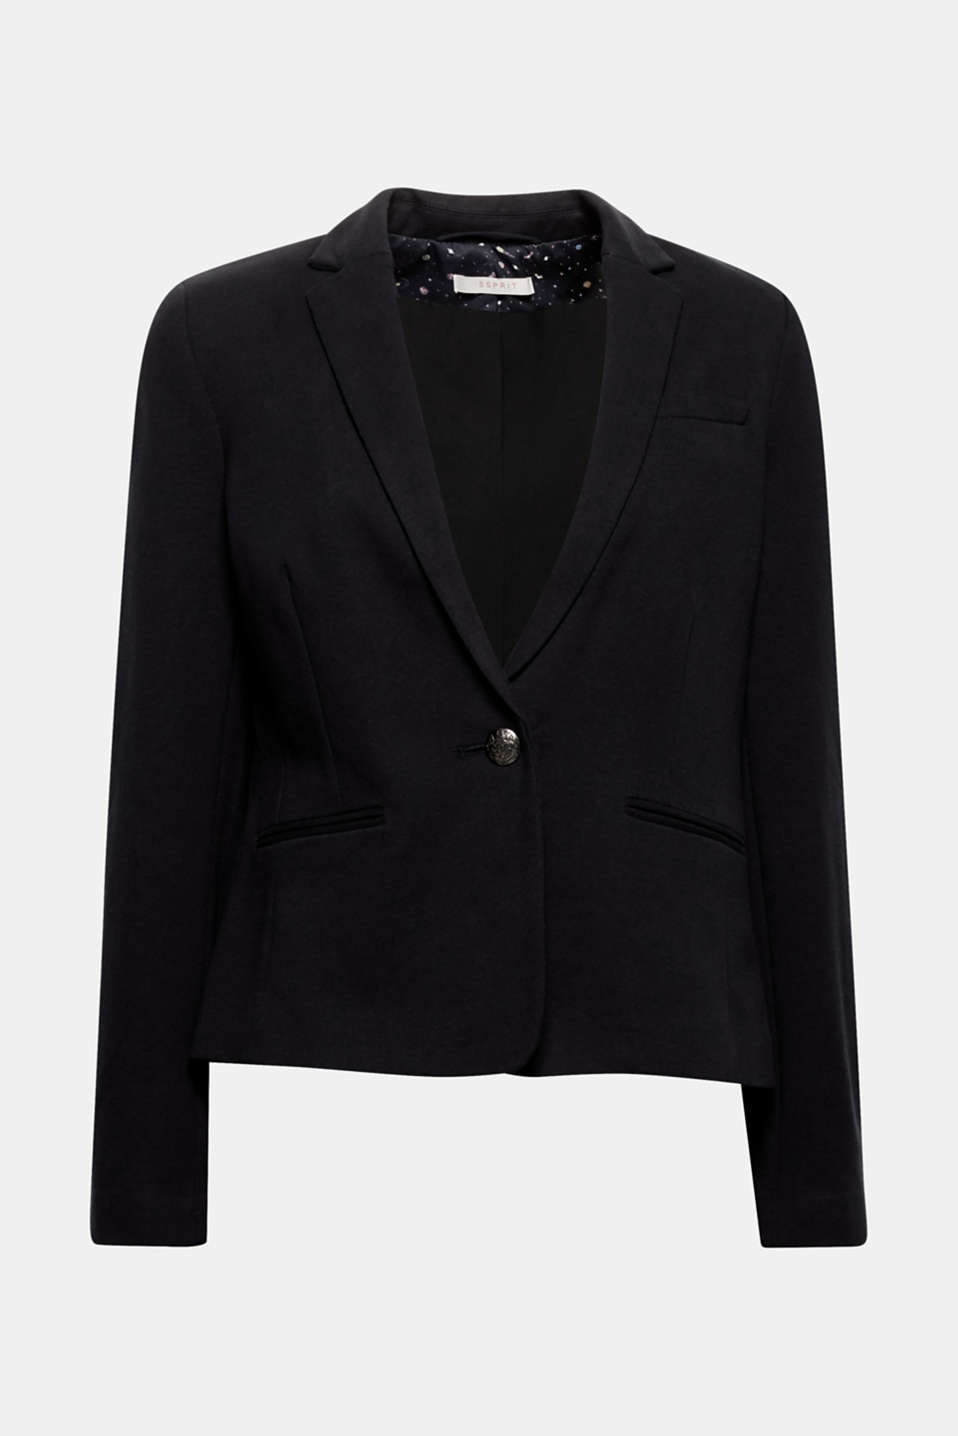 Works with business trousers or skinny jeans: this fitted blazer in comfortable stretch jersey is the ideal companion for various occasions!